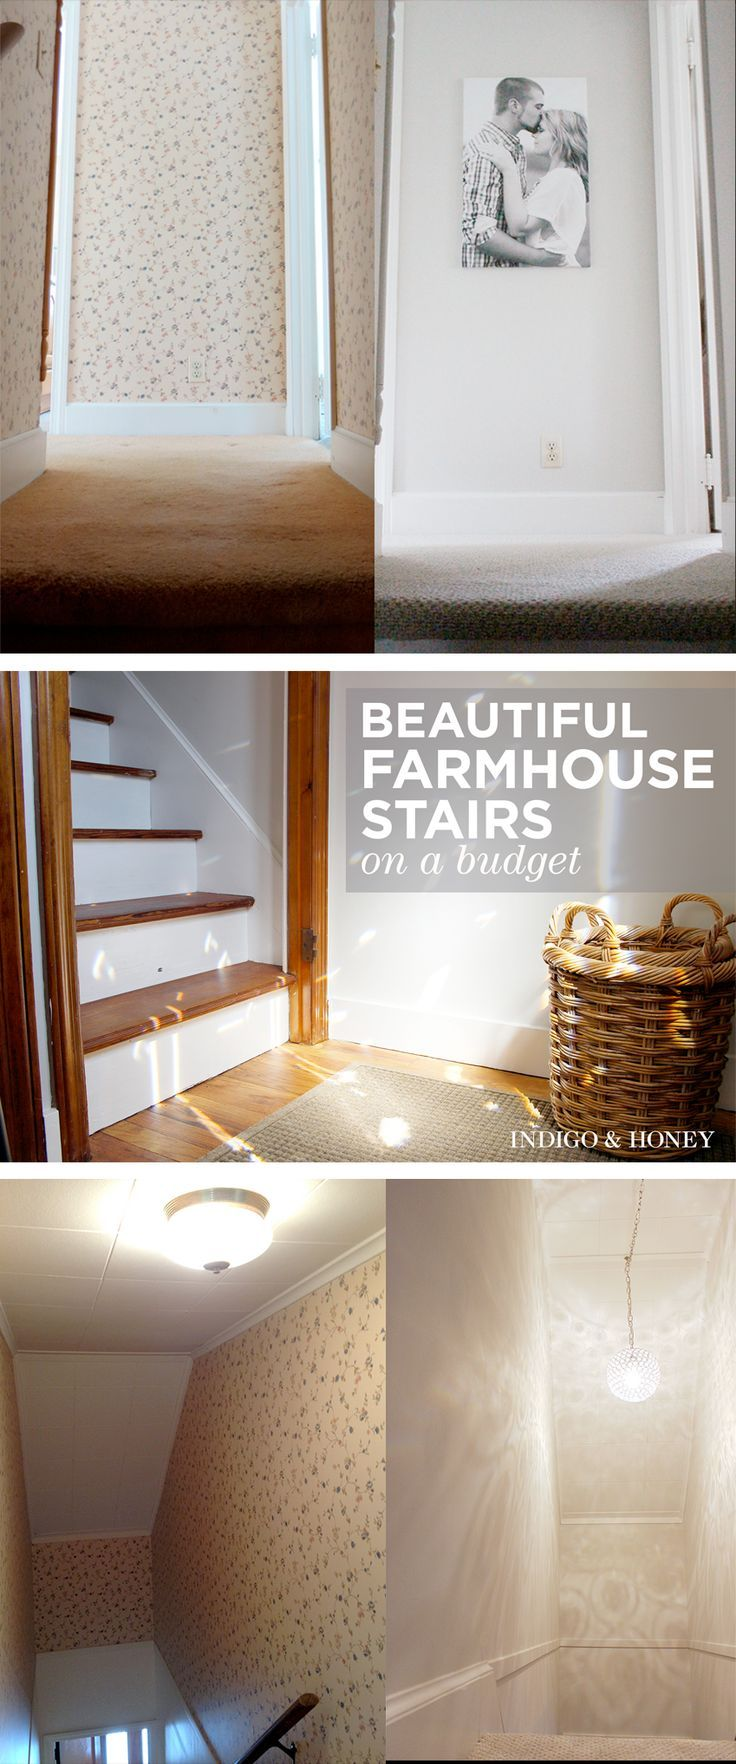 Affordable, step-by-step guide to creating fresh, farmhouse stairs!